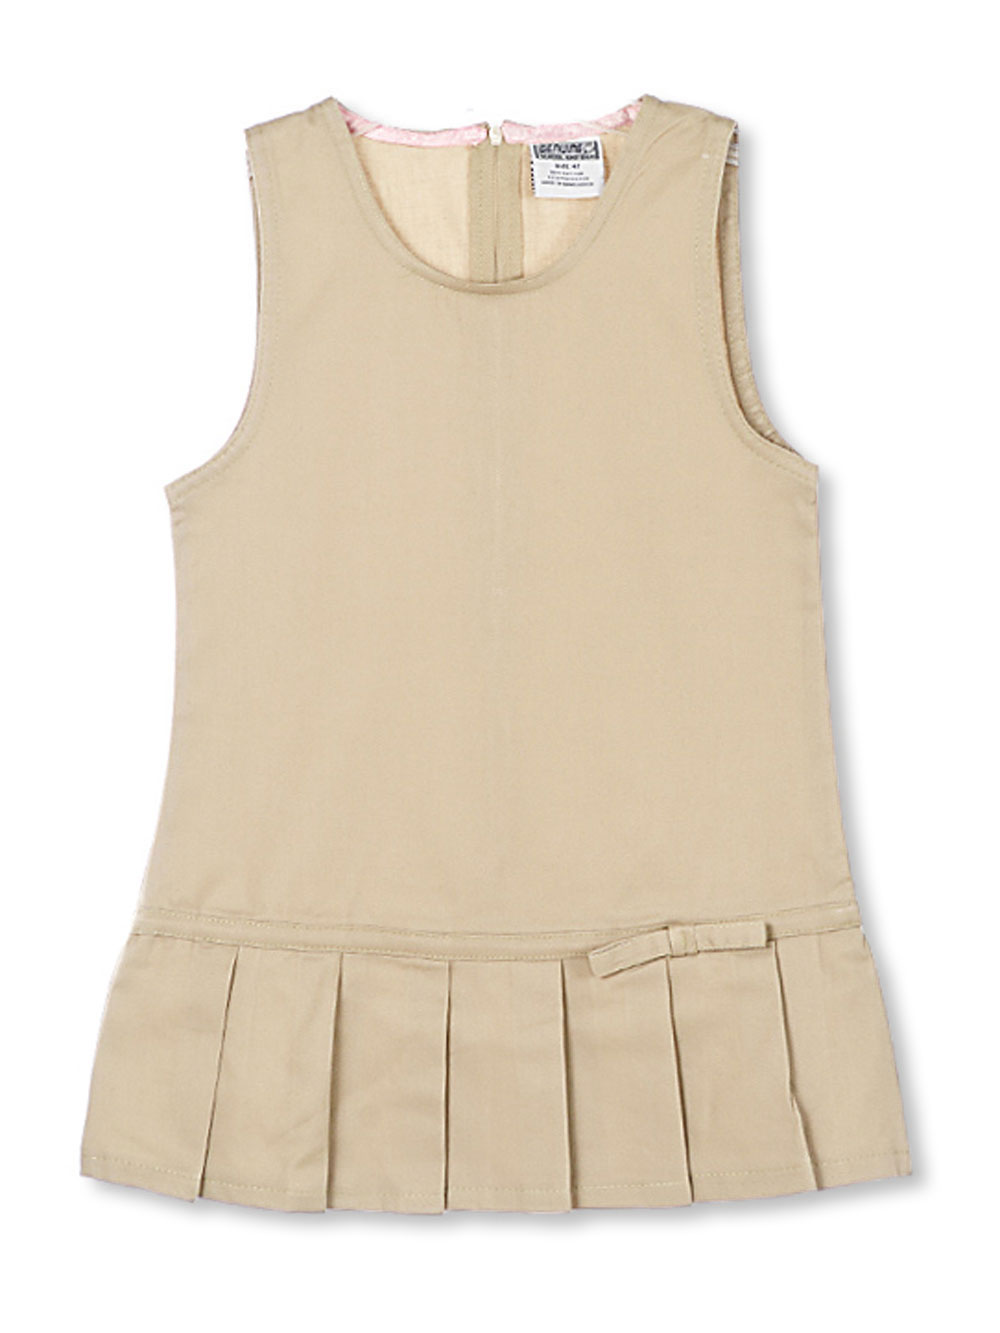 "GENUINE Girls Genuine ""Low Pleat"" Twill Jumper (Sizes 2T - 4T) at Sears.com"